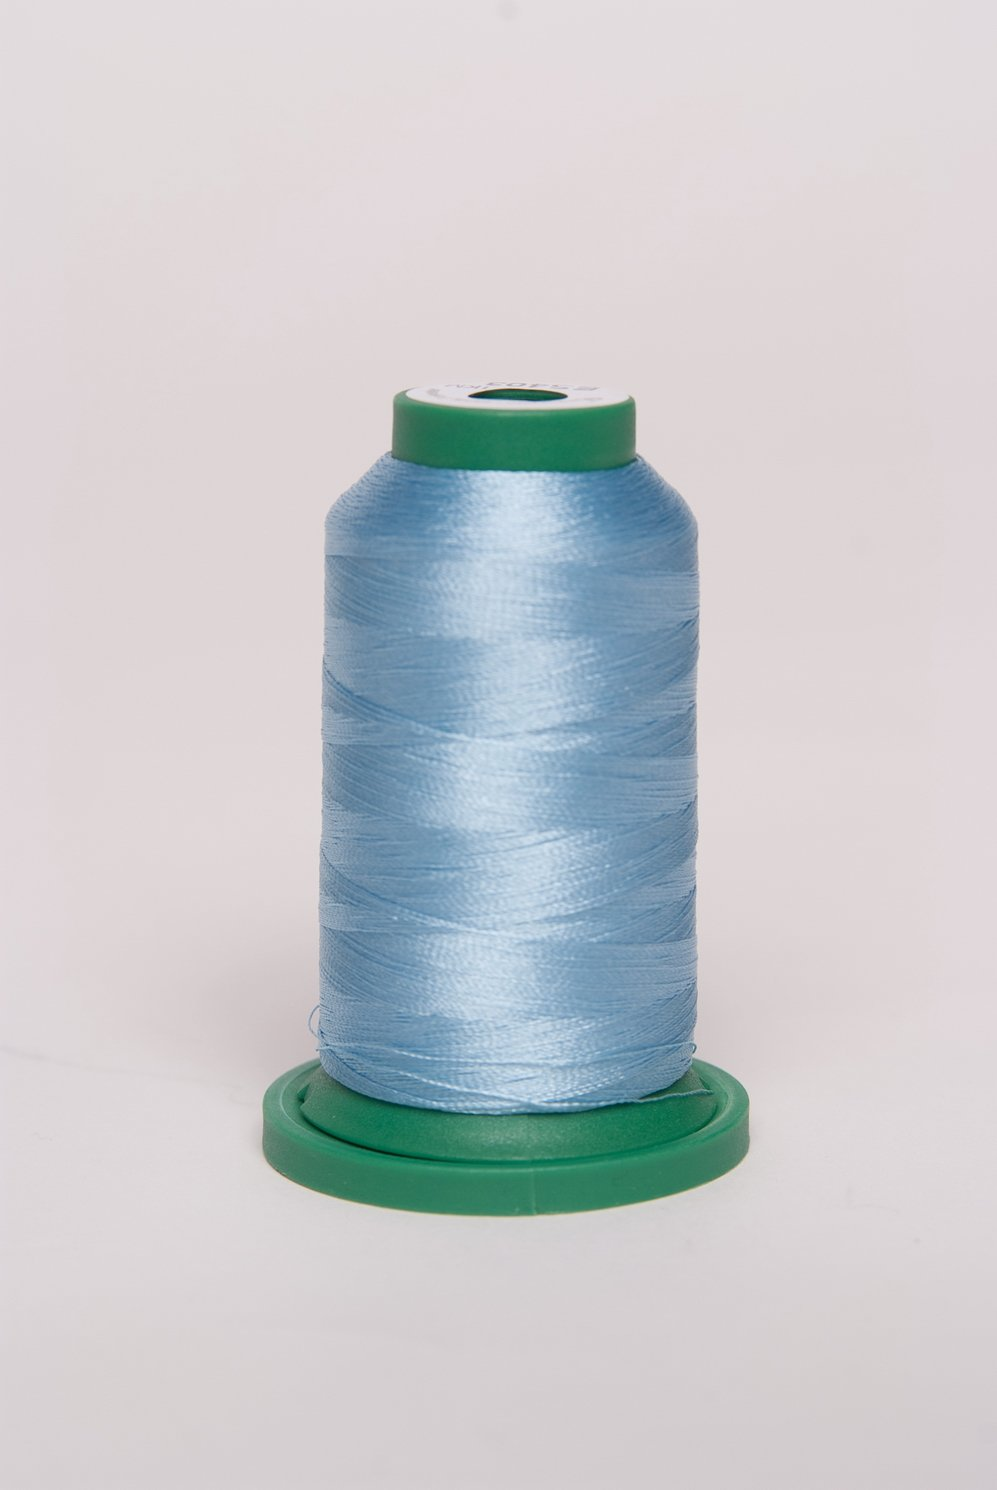 Chambray Blue - ES403 - Exquisite Embroidery Thread - 1000 meters